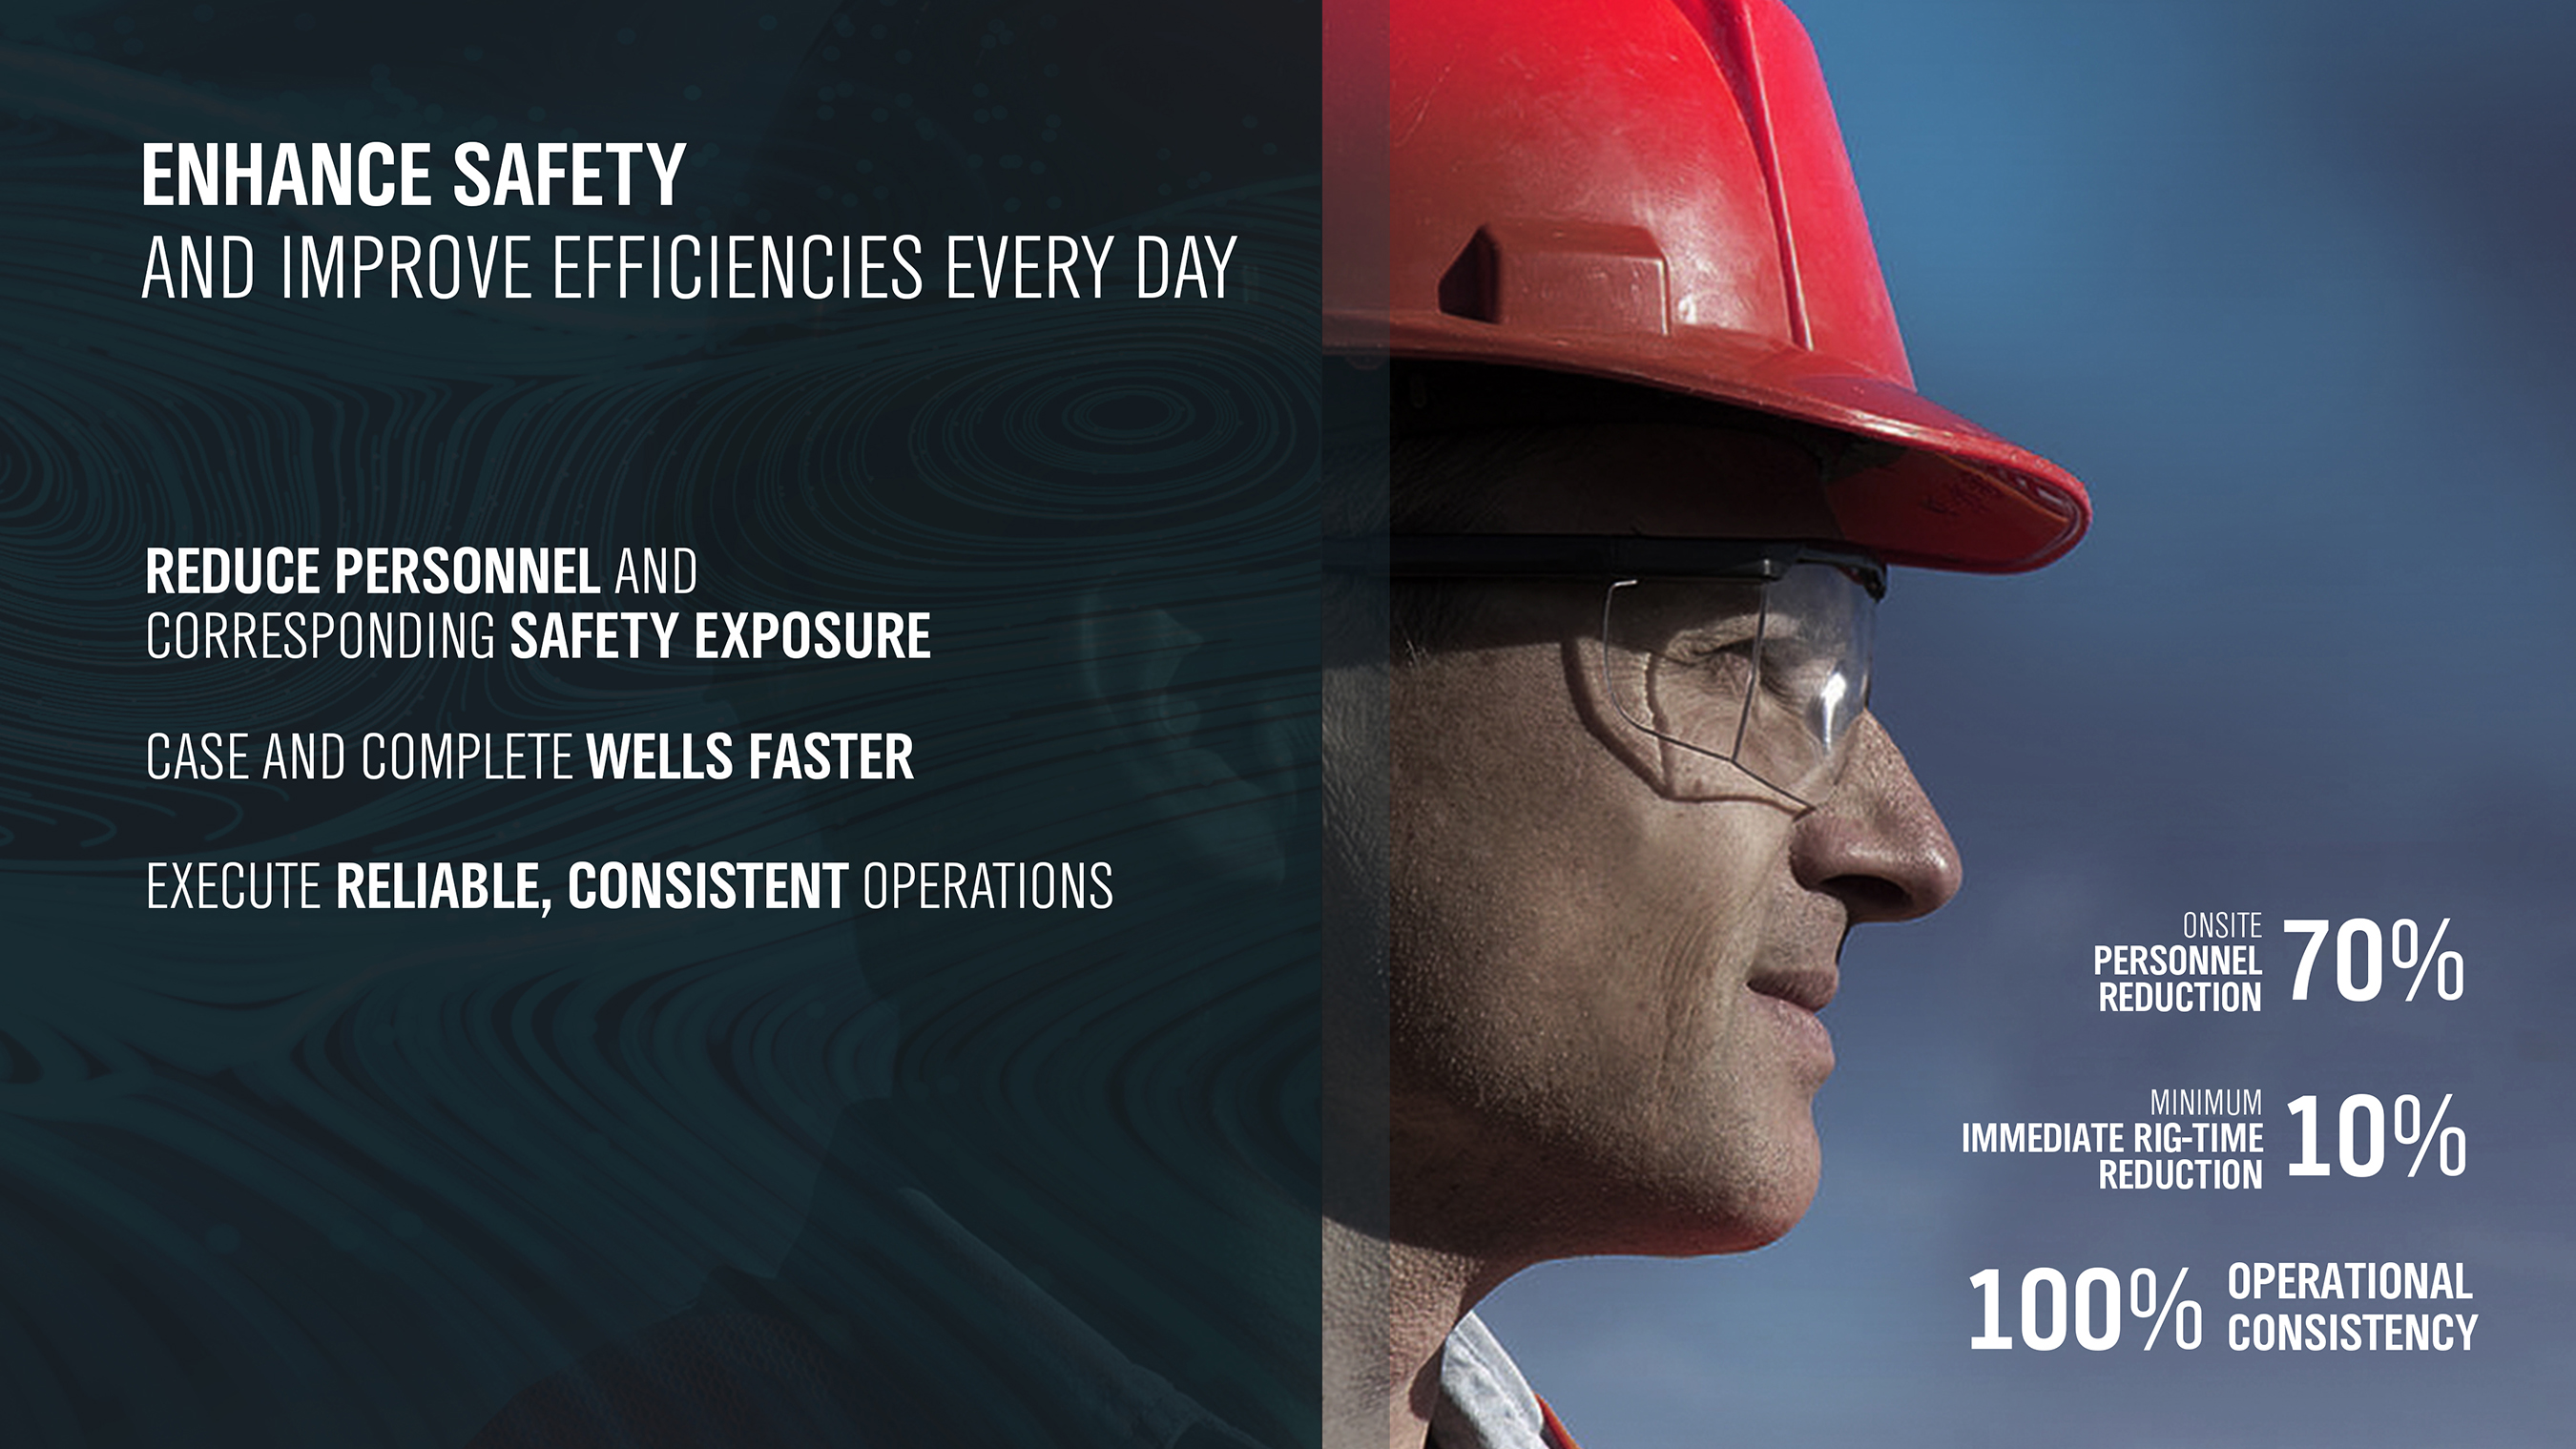 Enhance Safety And Improve Efficiencies Every Day